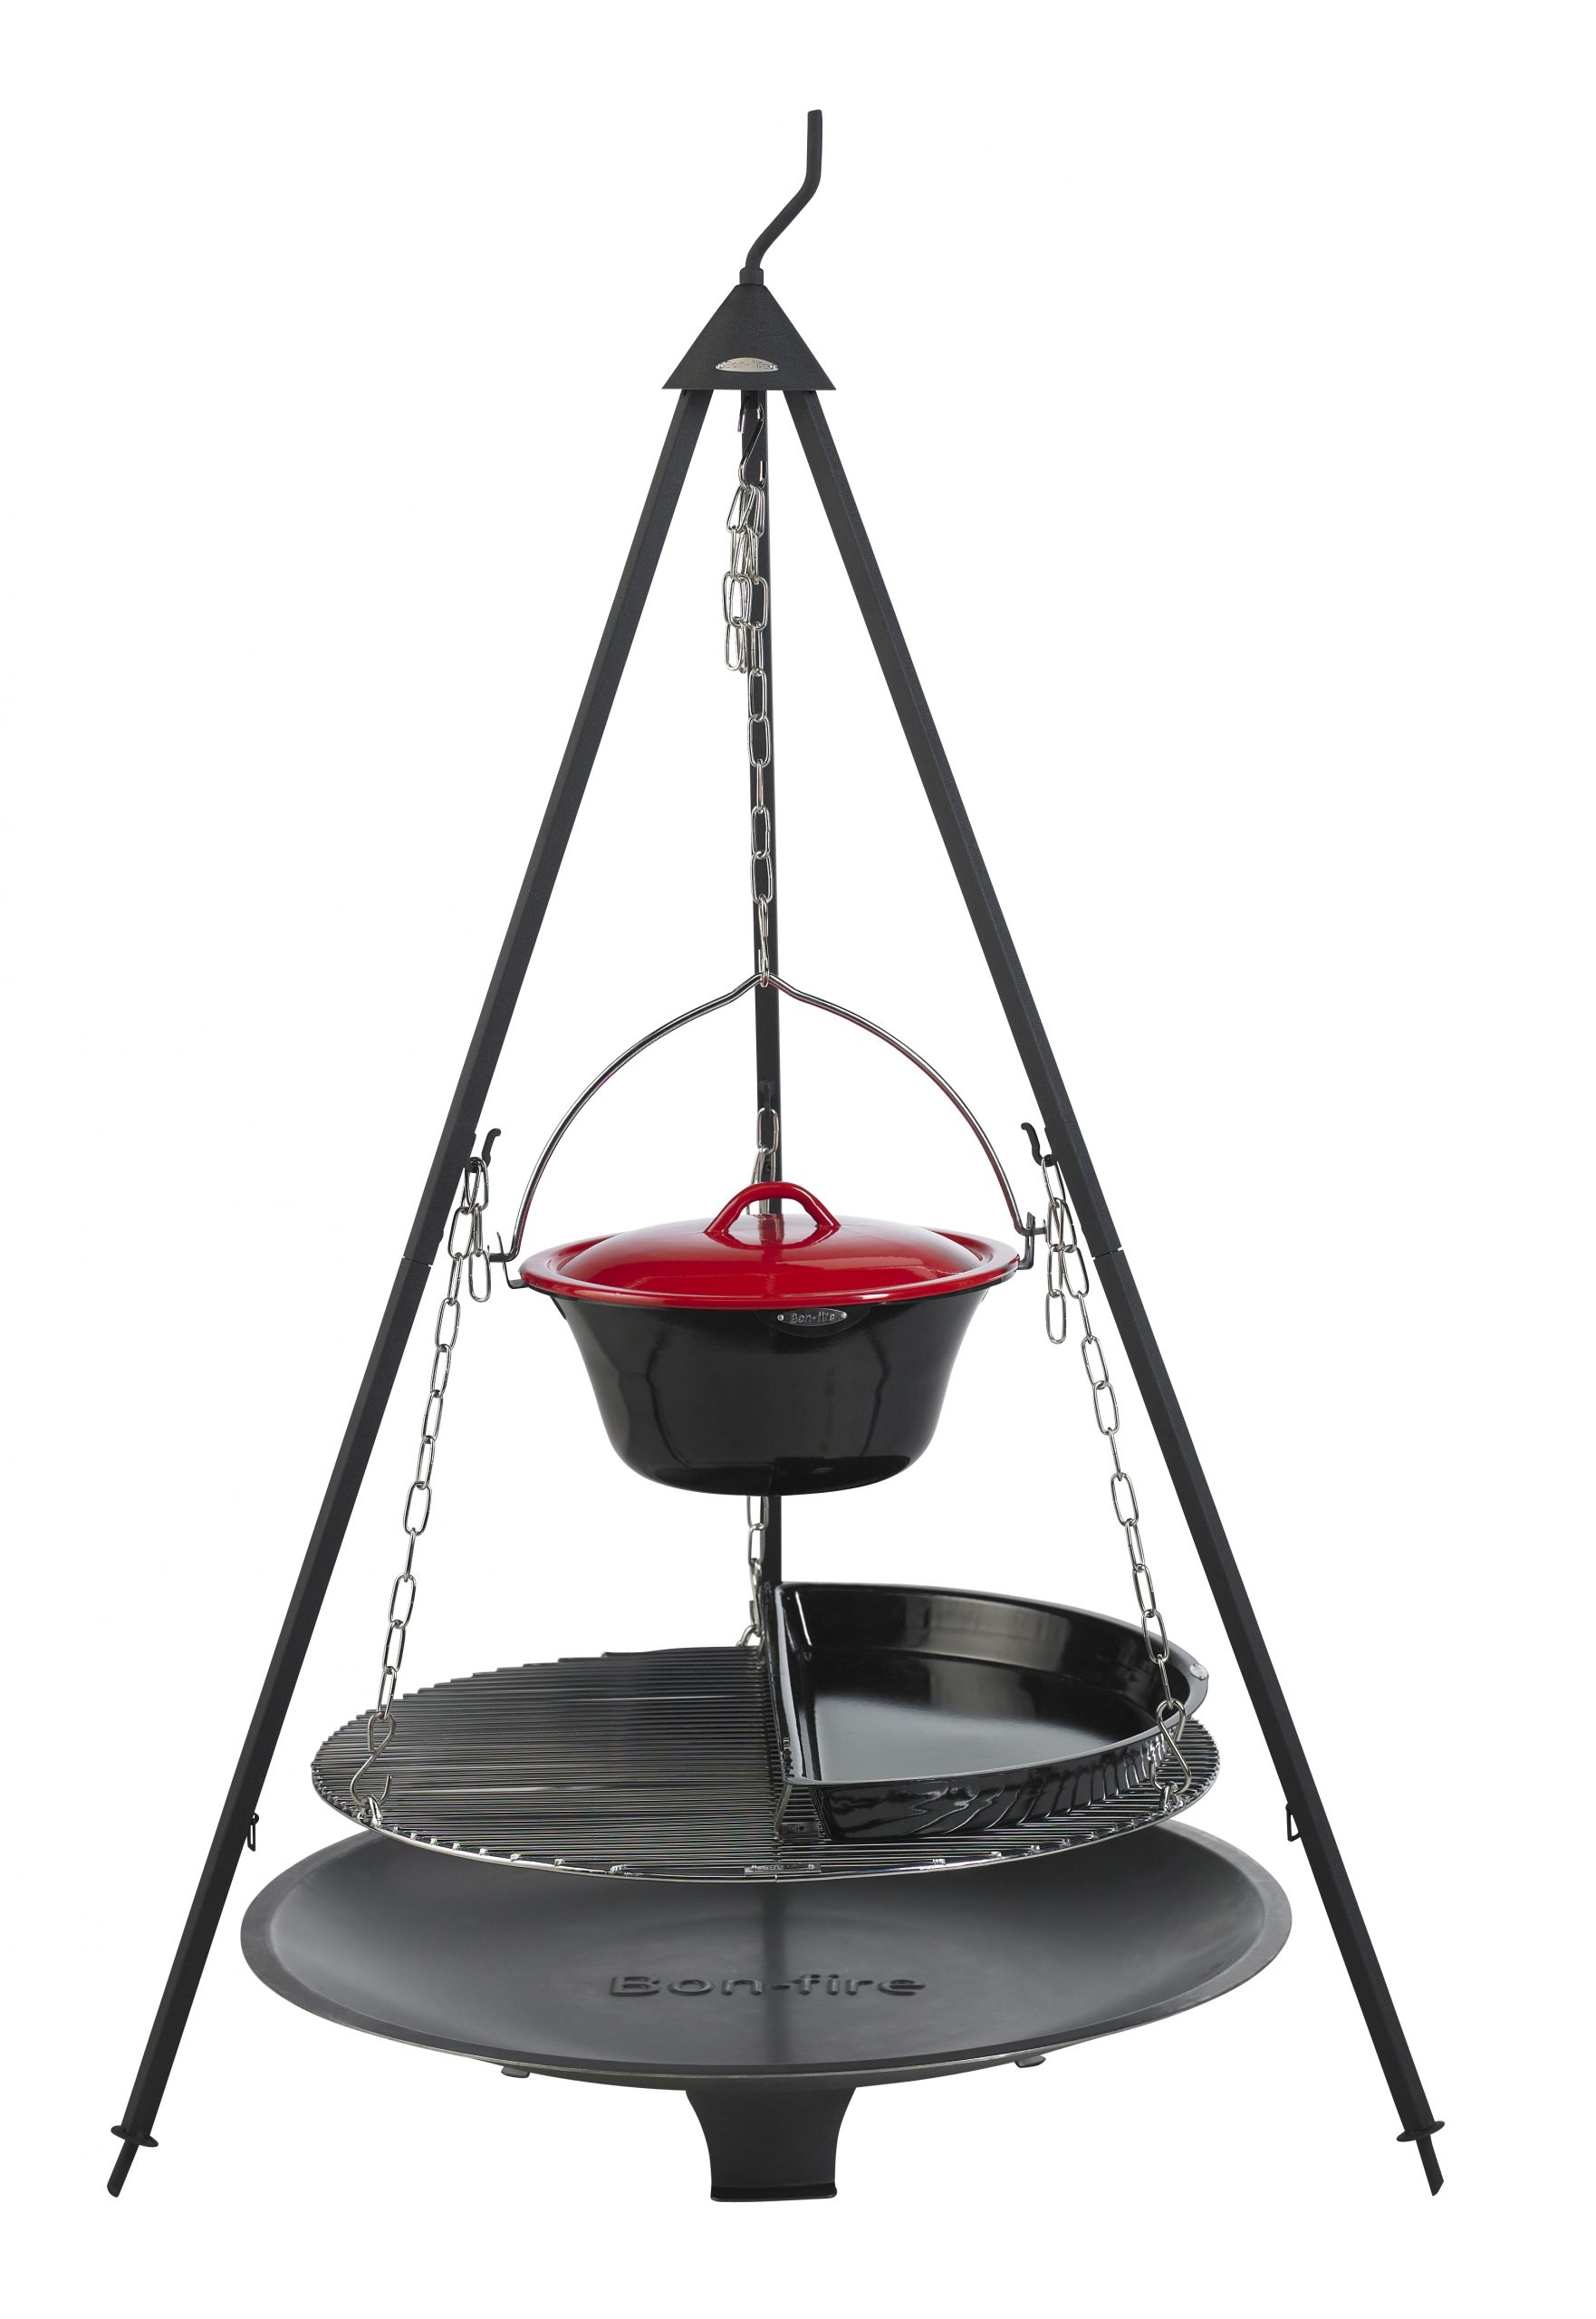 Bon-fire Brazier in steel and Basic set with Half BBQ pan and Stew pot.